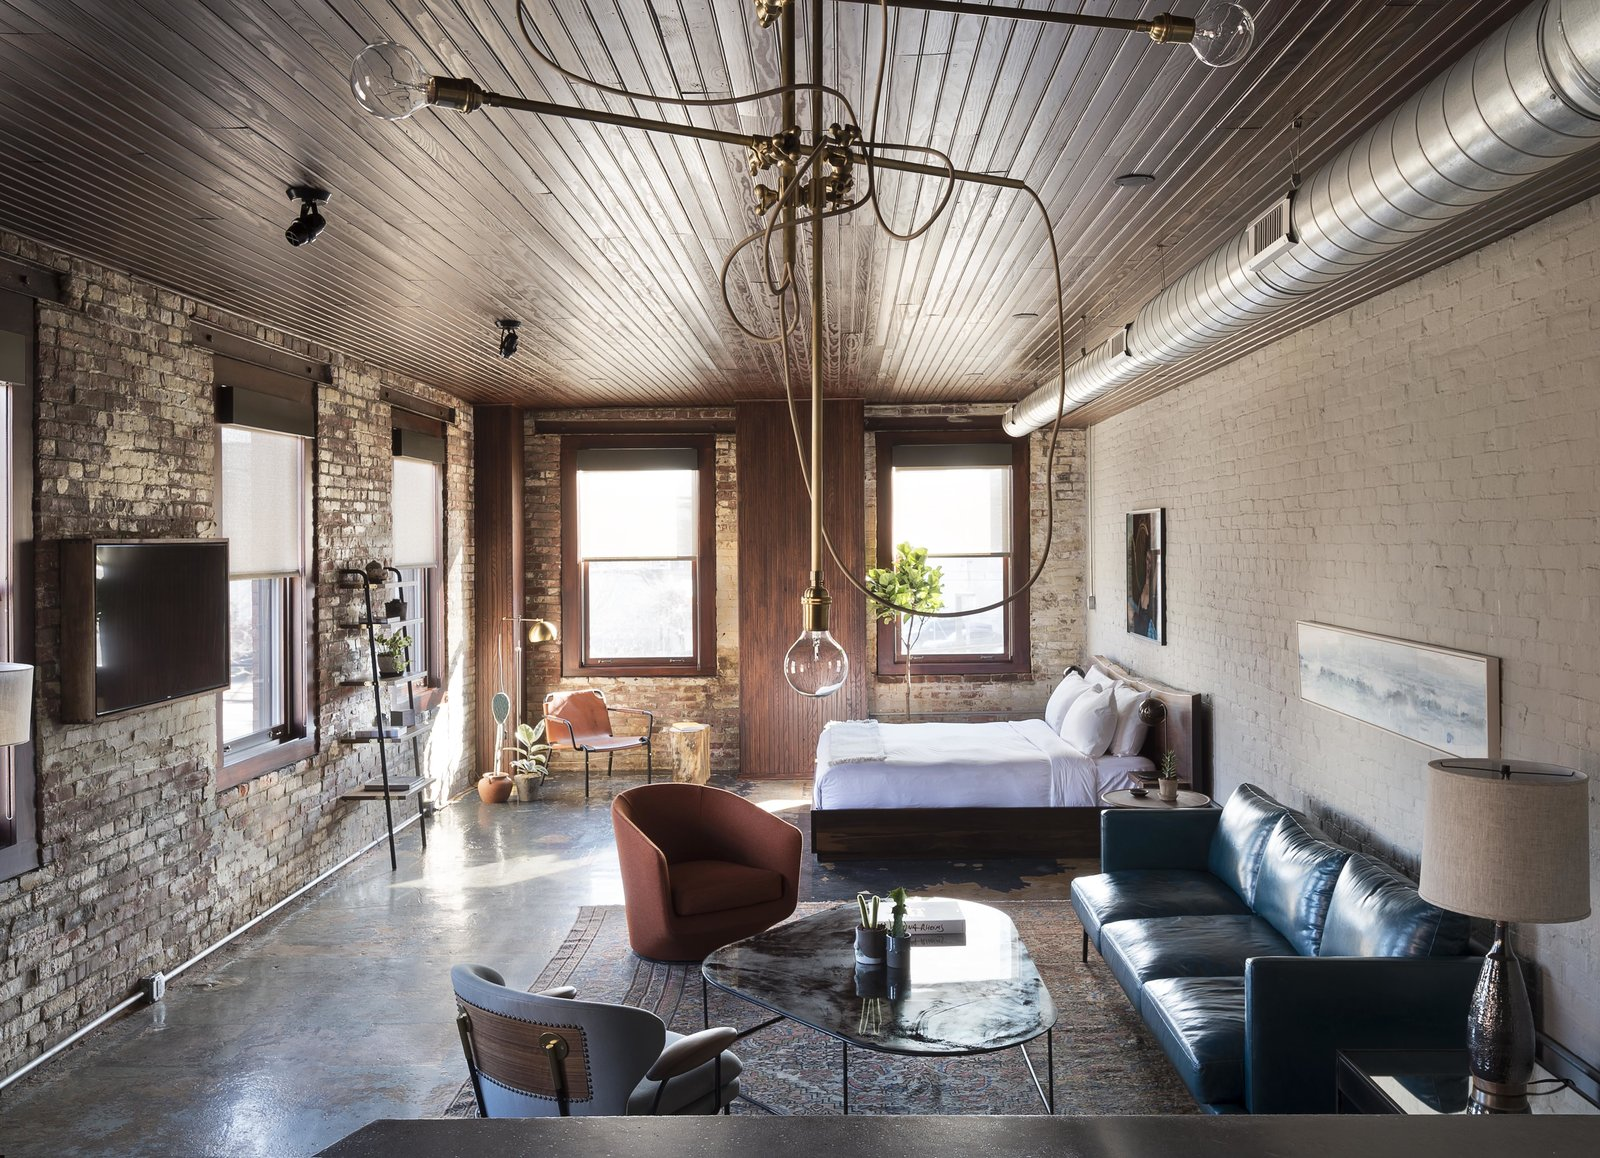 Tagged: Living Room, Chair, End Tables, Lamps, Sofa, Coffee Tables, Pendant Lighting, and Concrete Floor.  Mulherin's Hotel by Daniel Olsovsky